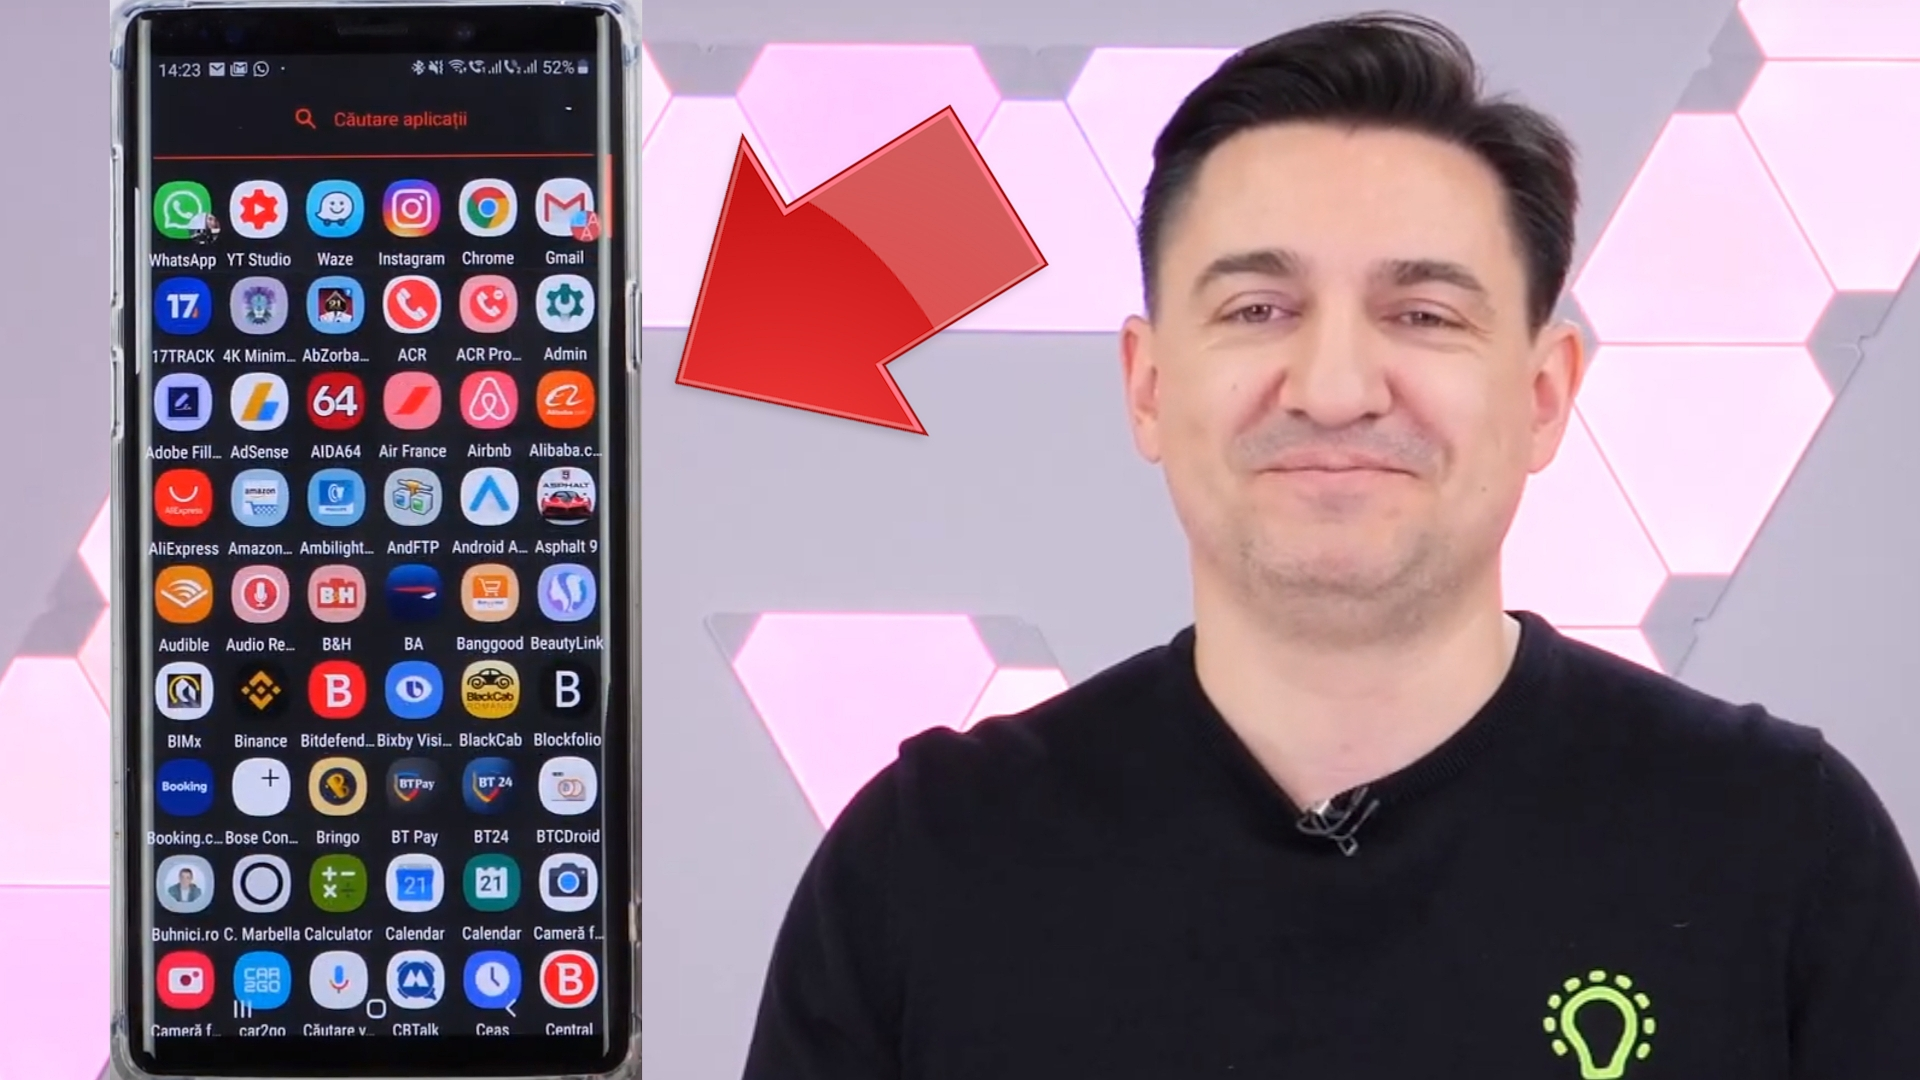 https://buhnici.ro/samsung-galaxy-a9-patru-camere-unboxing-review/